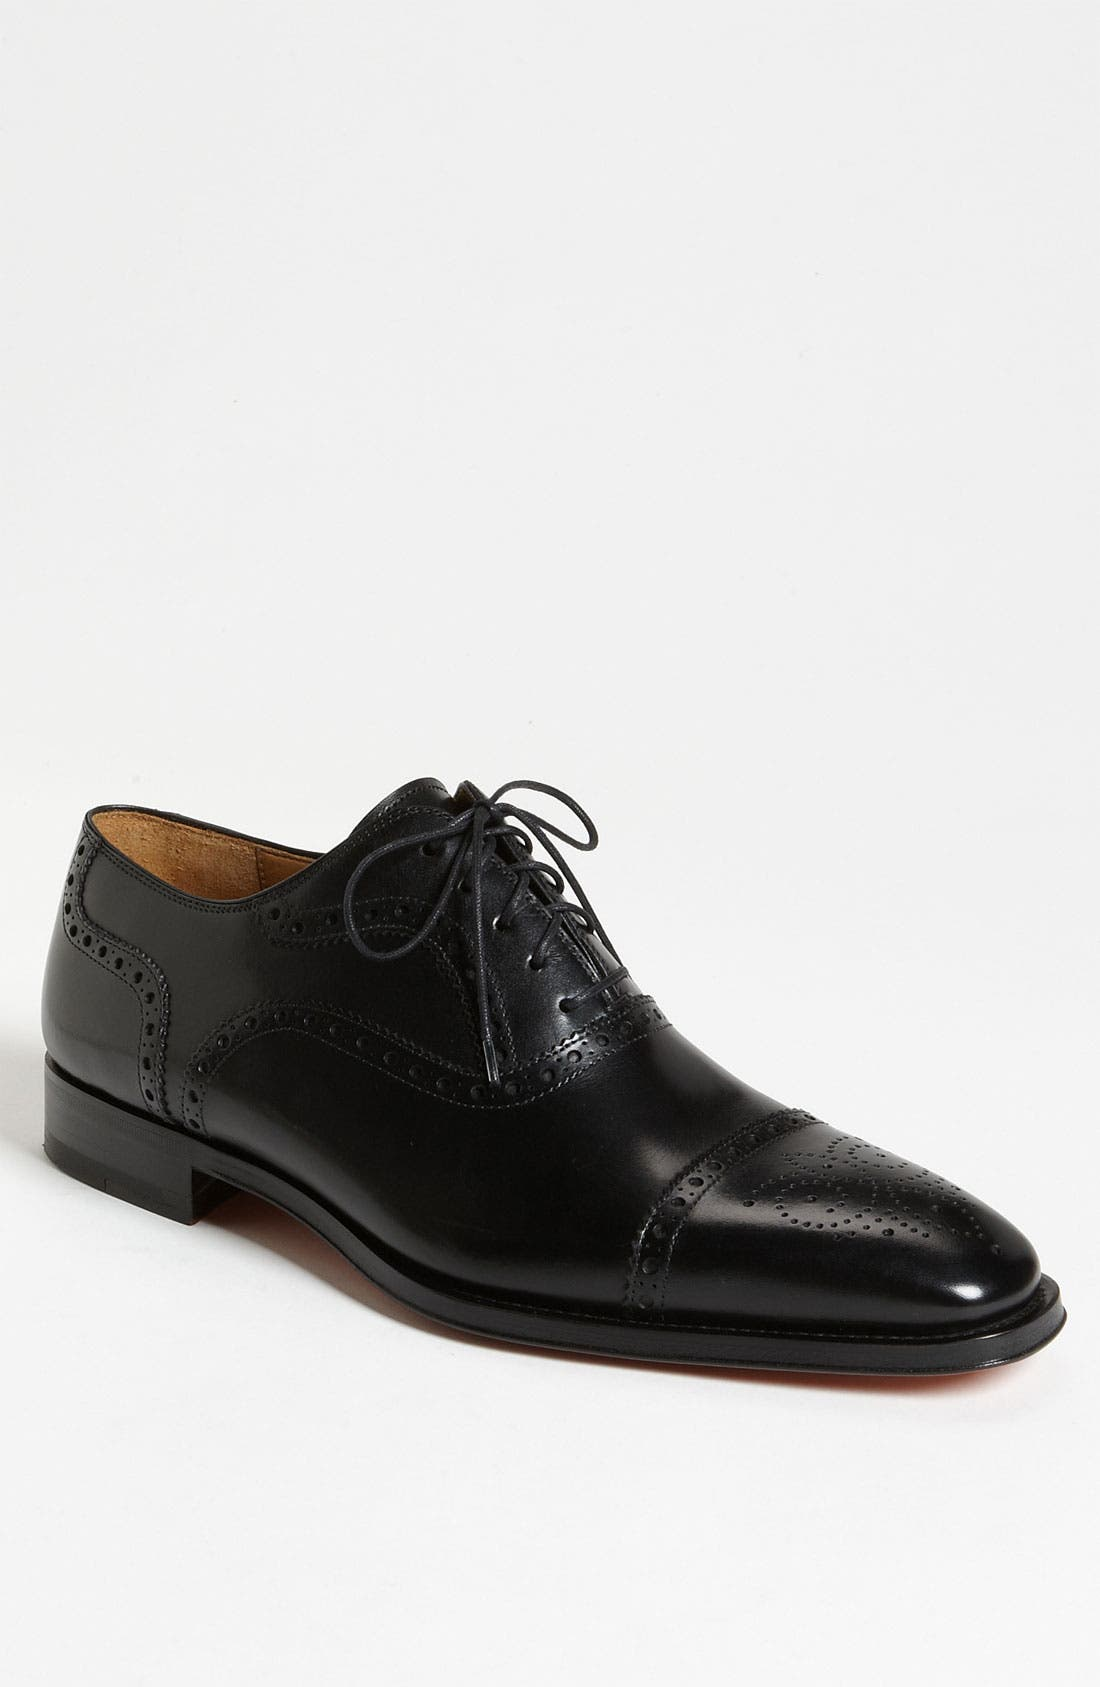 Main Image - Magnanni 'Santiago' Cap Toe Oxford (Men)